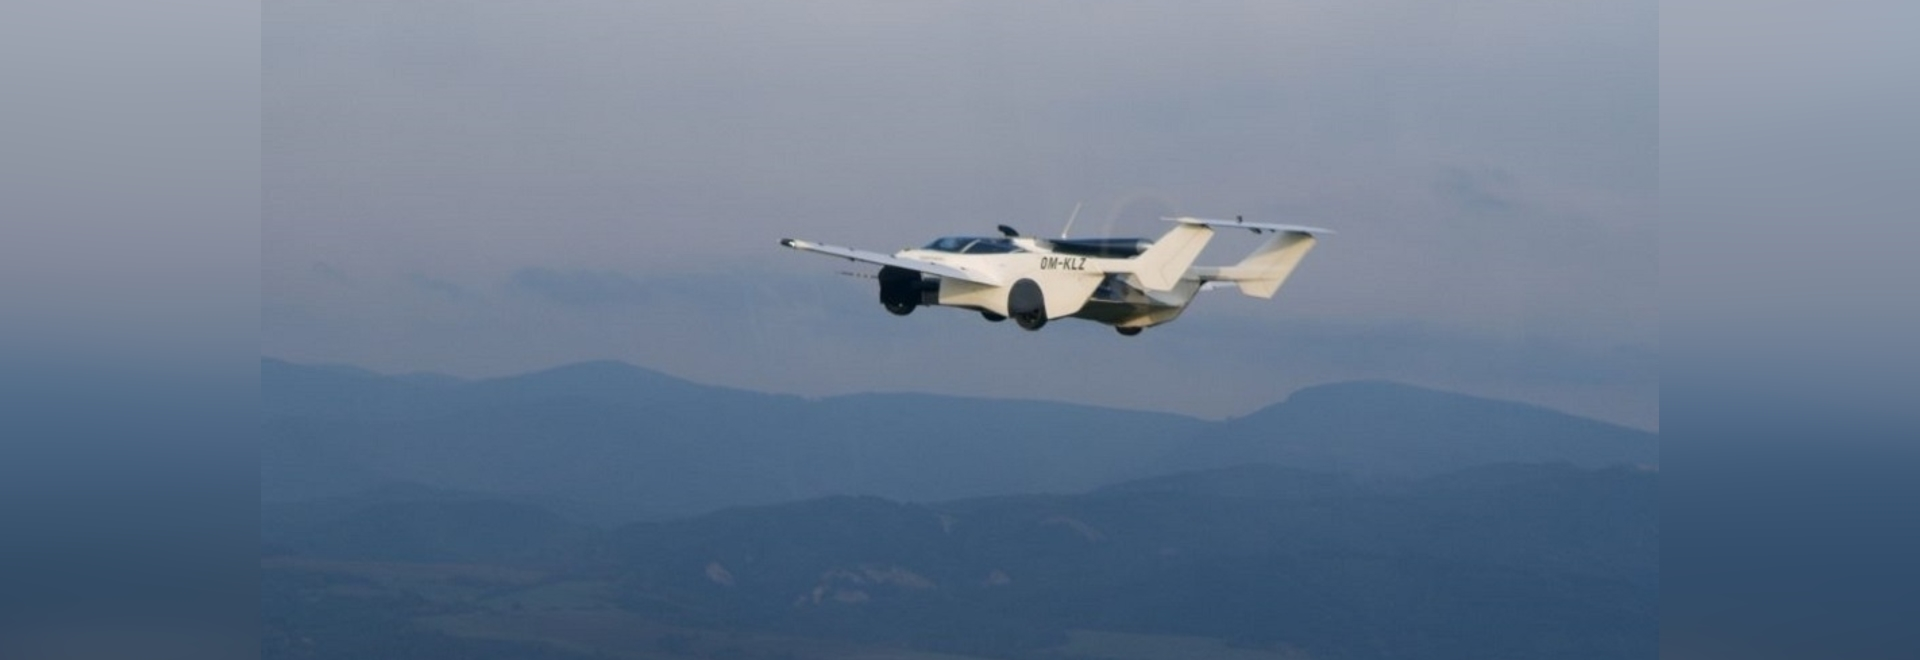 The AirCar completed a 35-minute flight from Nitra to Bratislava in Slovakia this week.